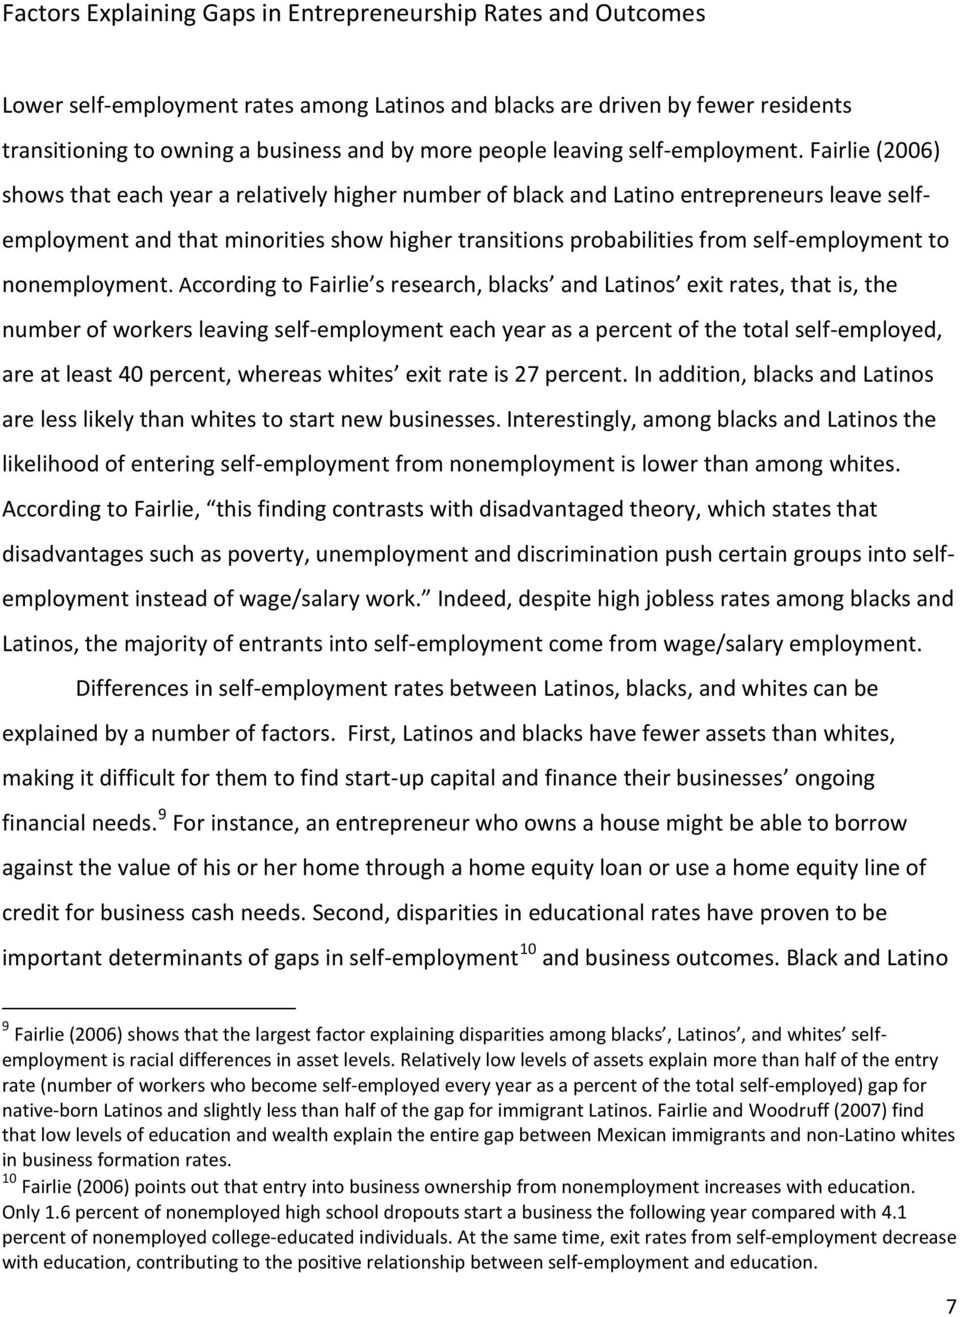 Fairlie (2006) shows that each year a relatively higher number of black and Latino entrepreneurs leave selfemployment and that minorities show higher transitions probabilities from self-employment to